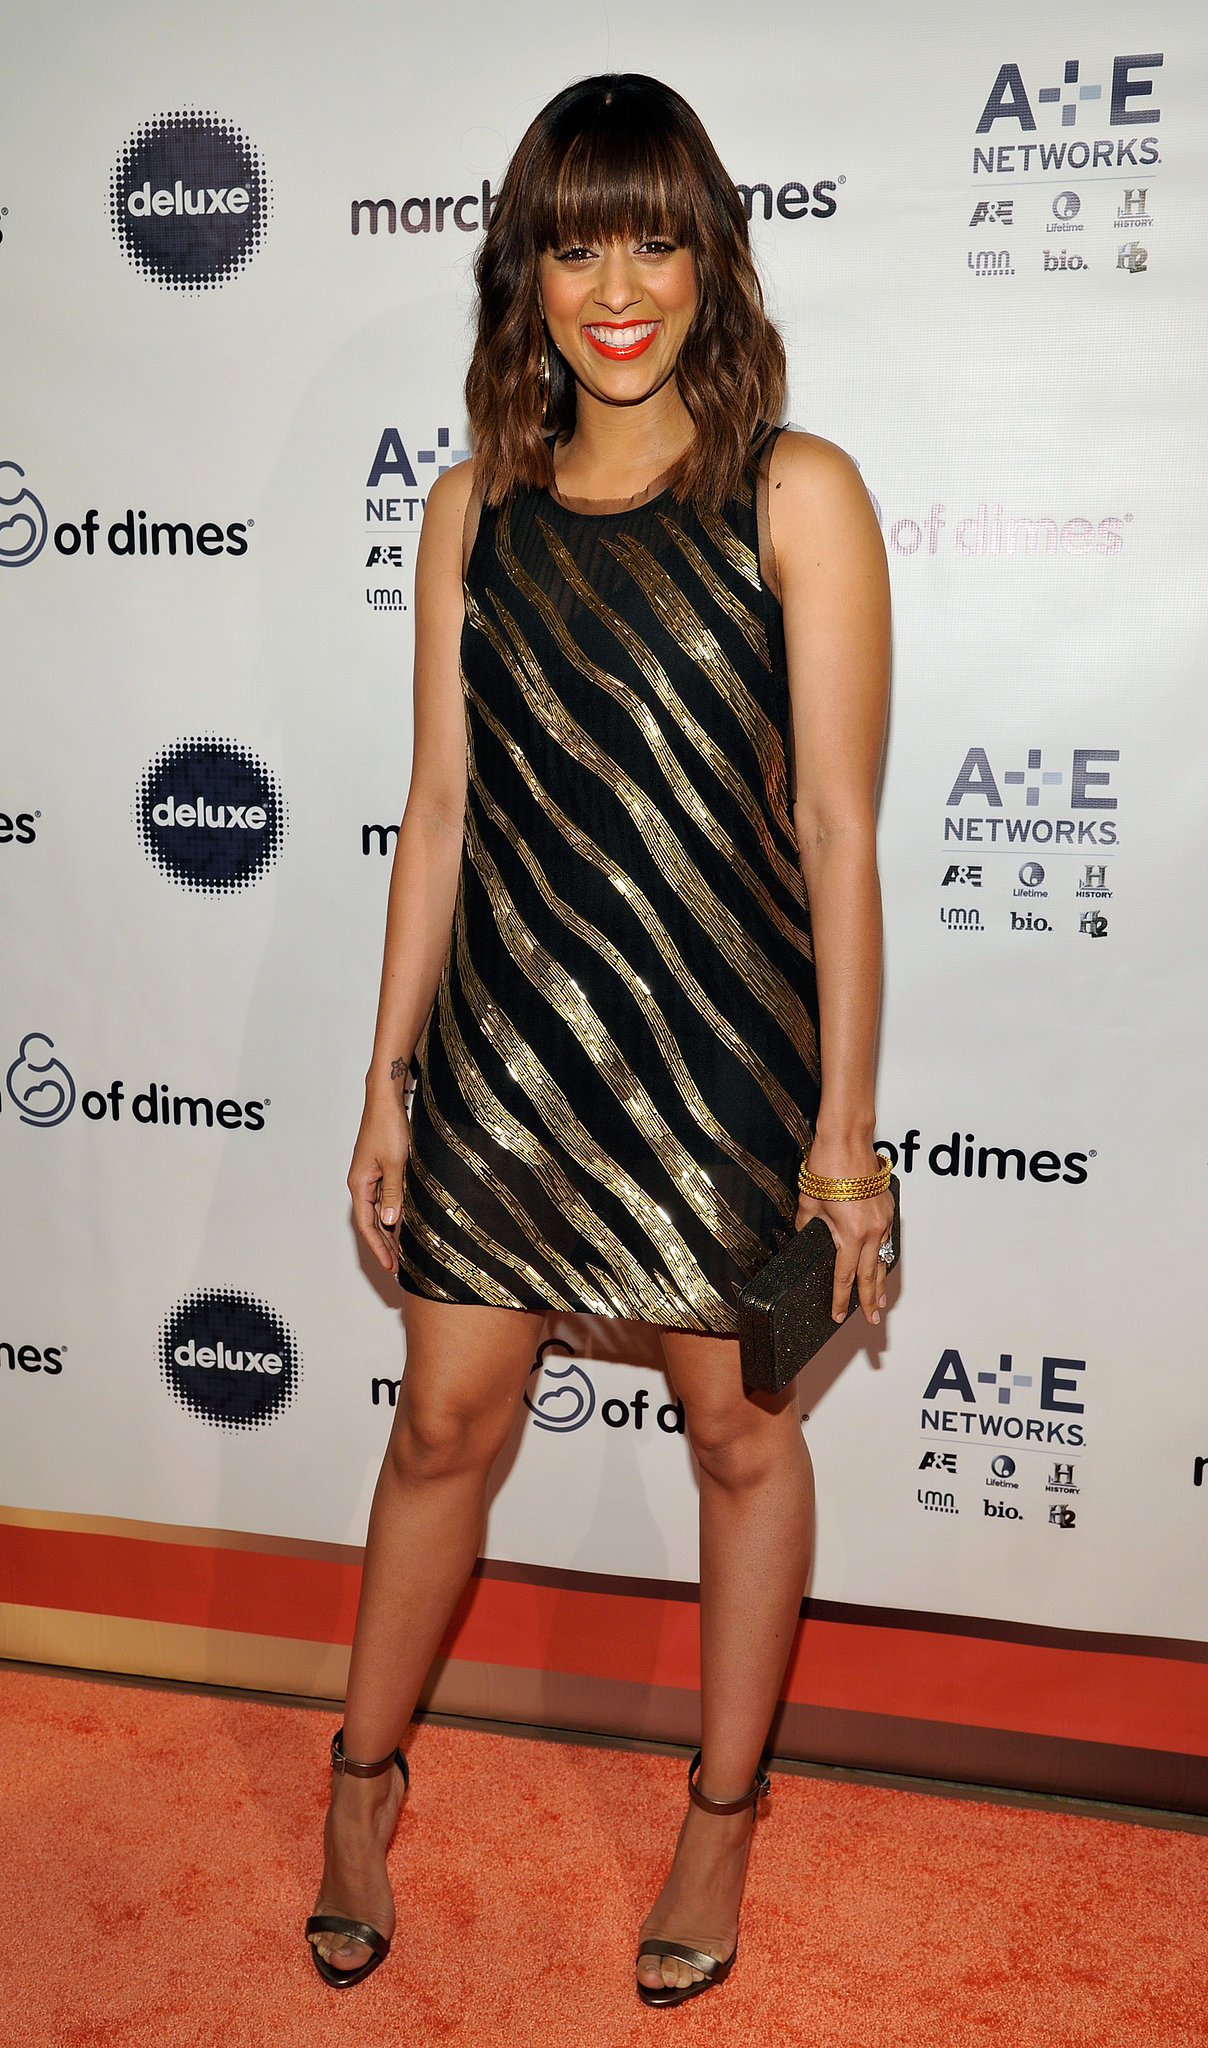 Tia Mowry walked the red carpet at the event.